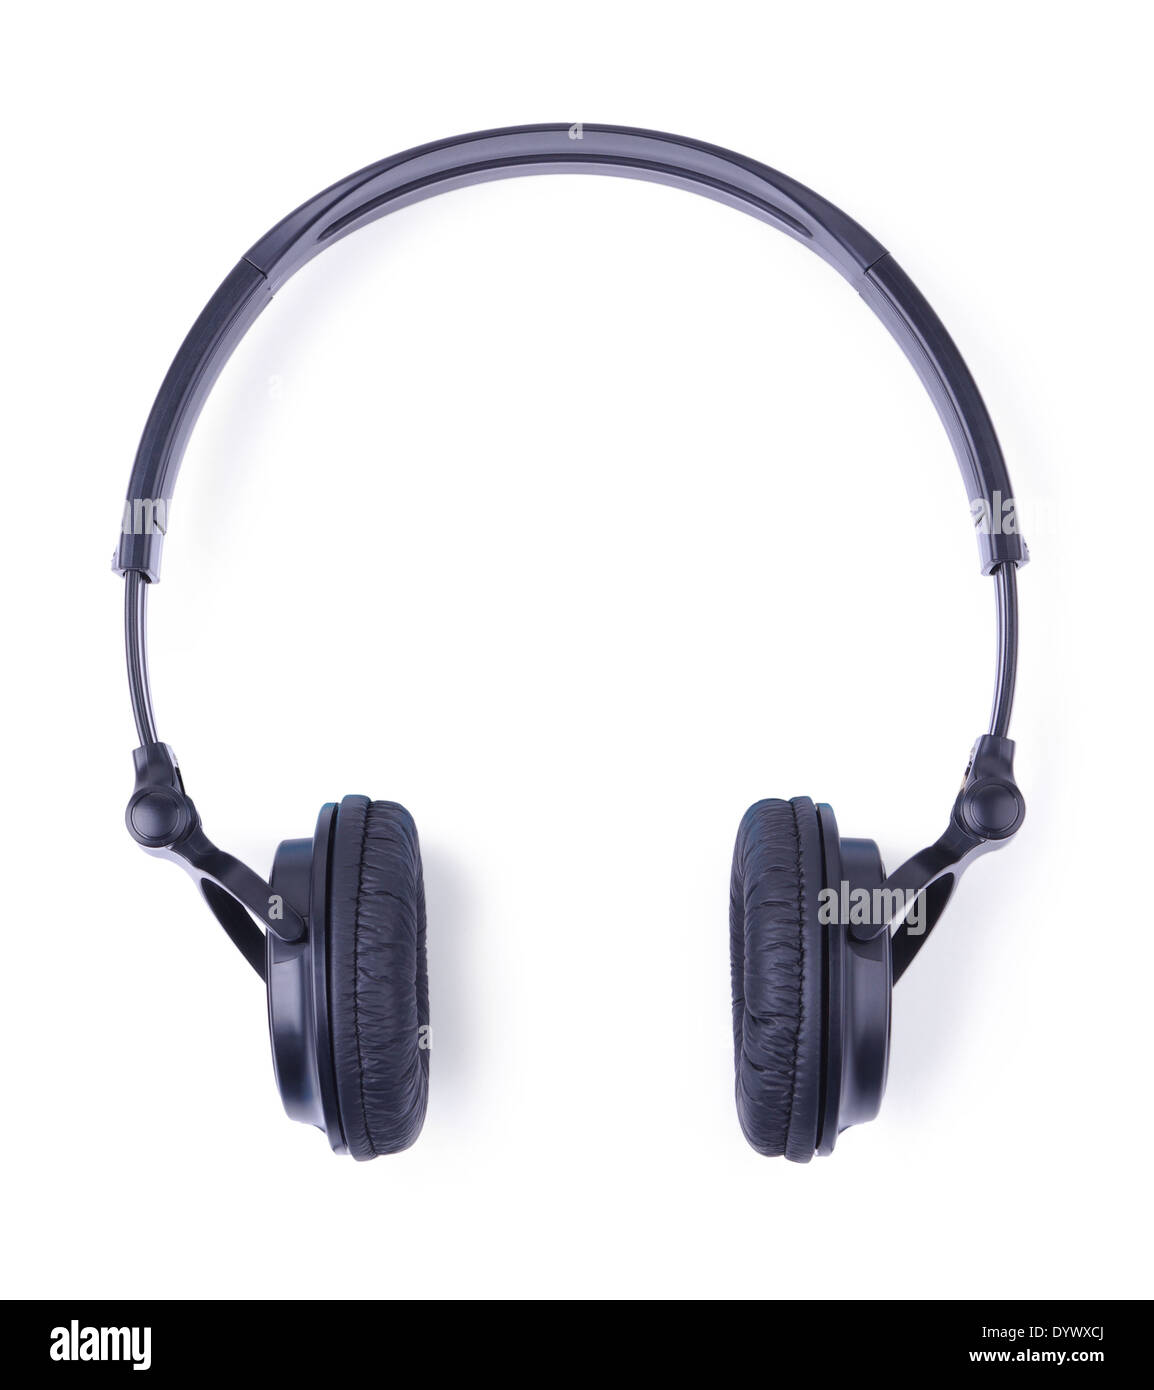 Headphones on a white background - Stock Image